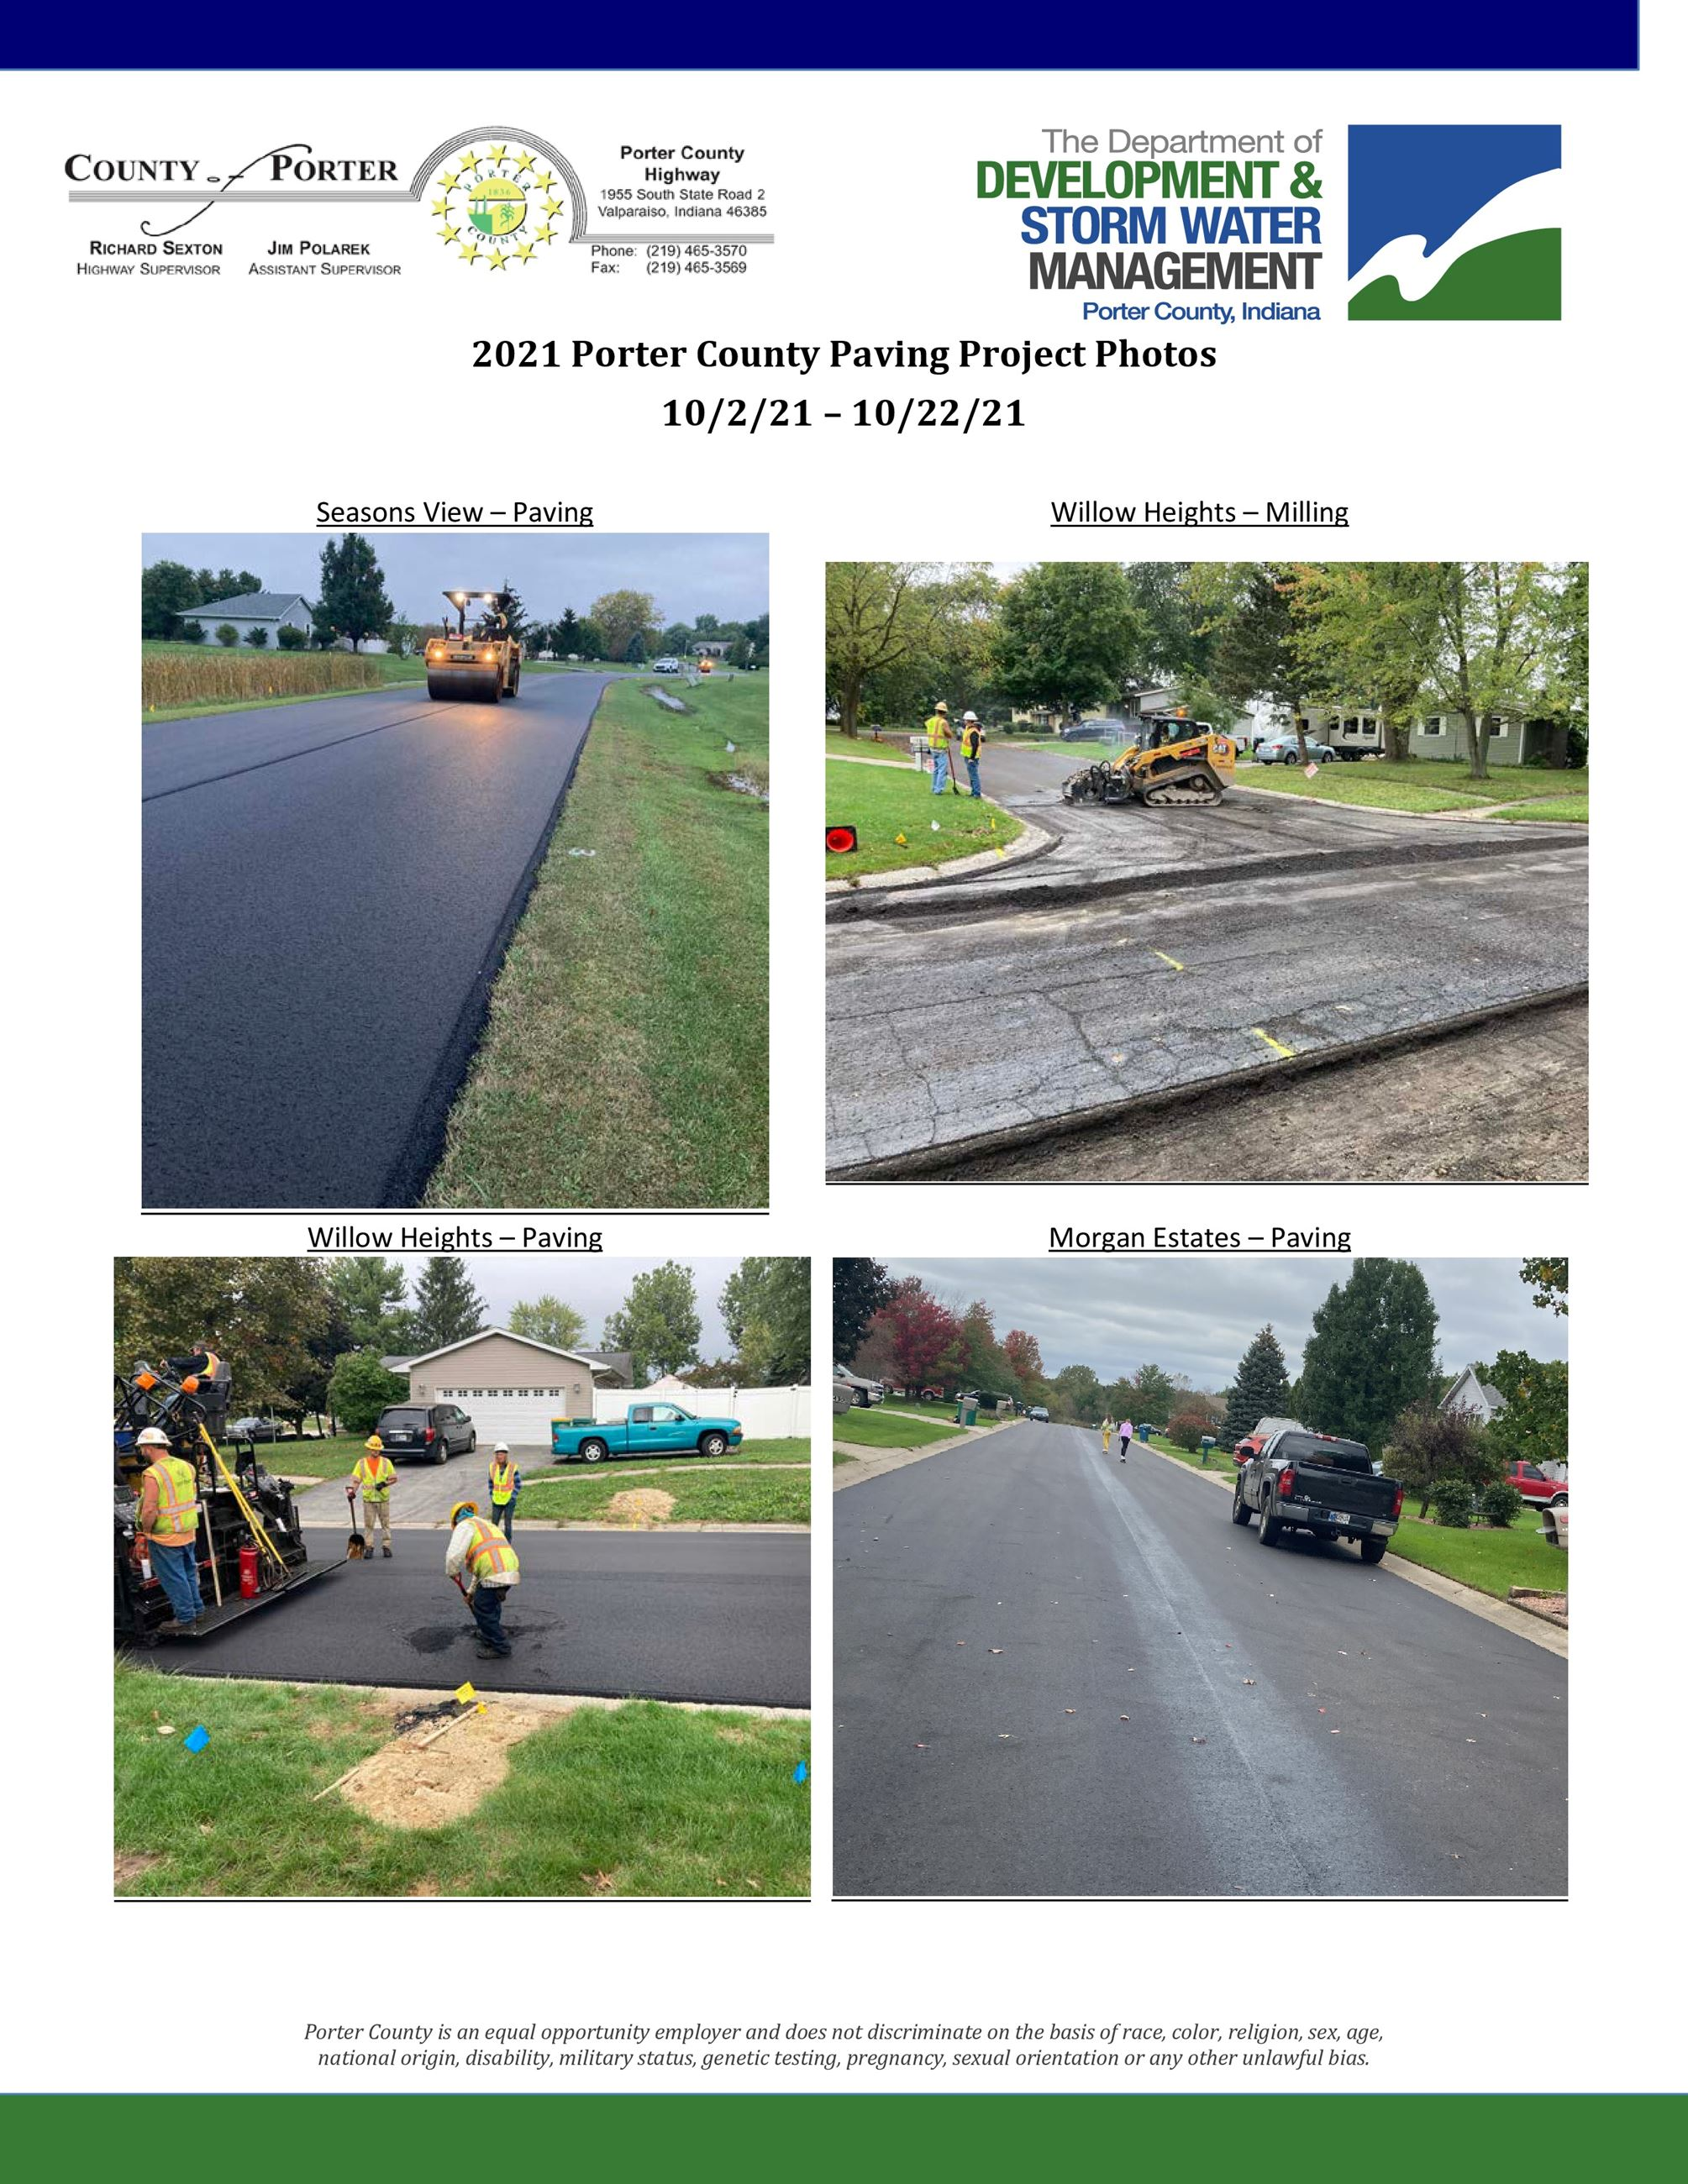 Photos of the 2021 Subdivisions Paving Projects